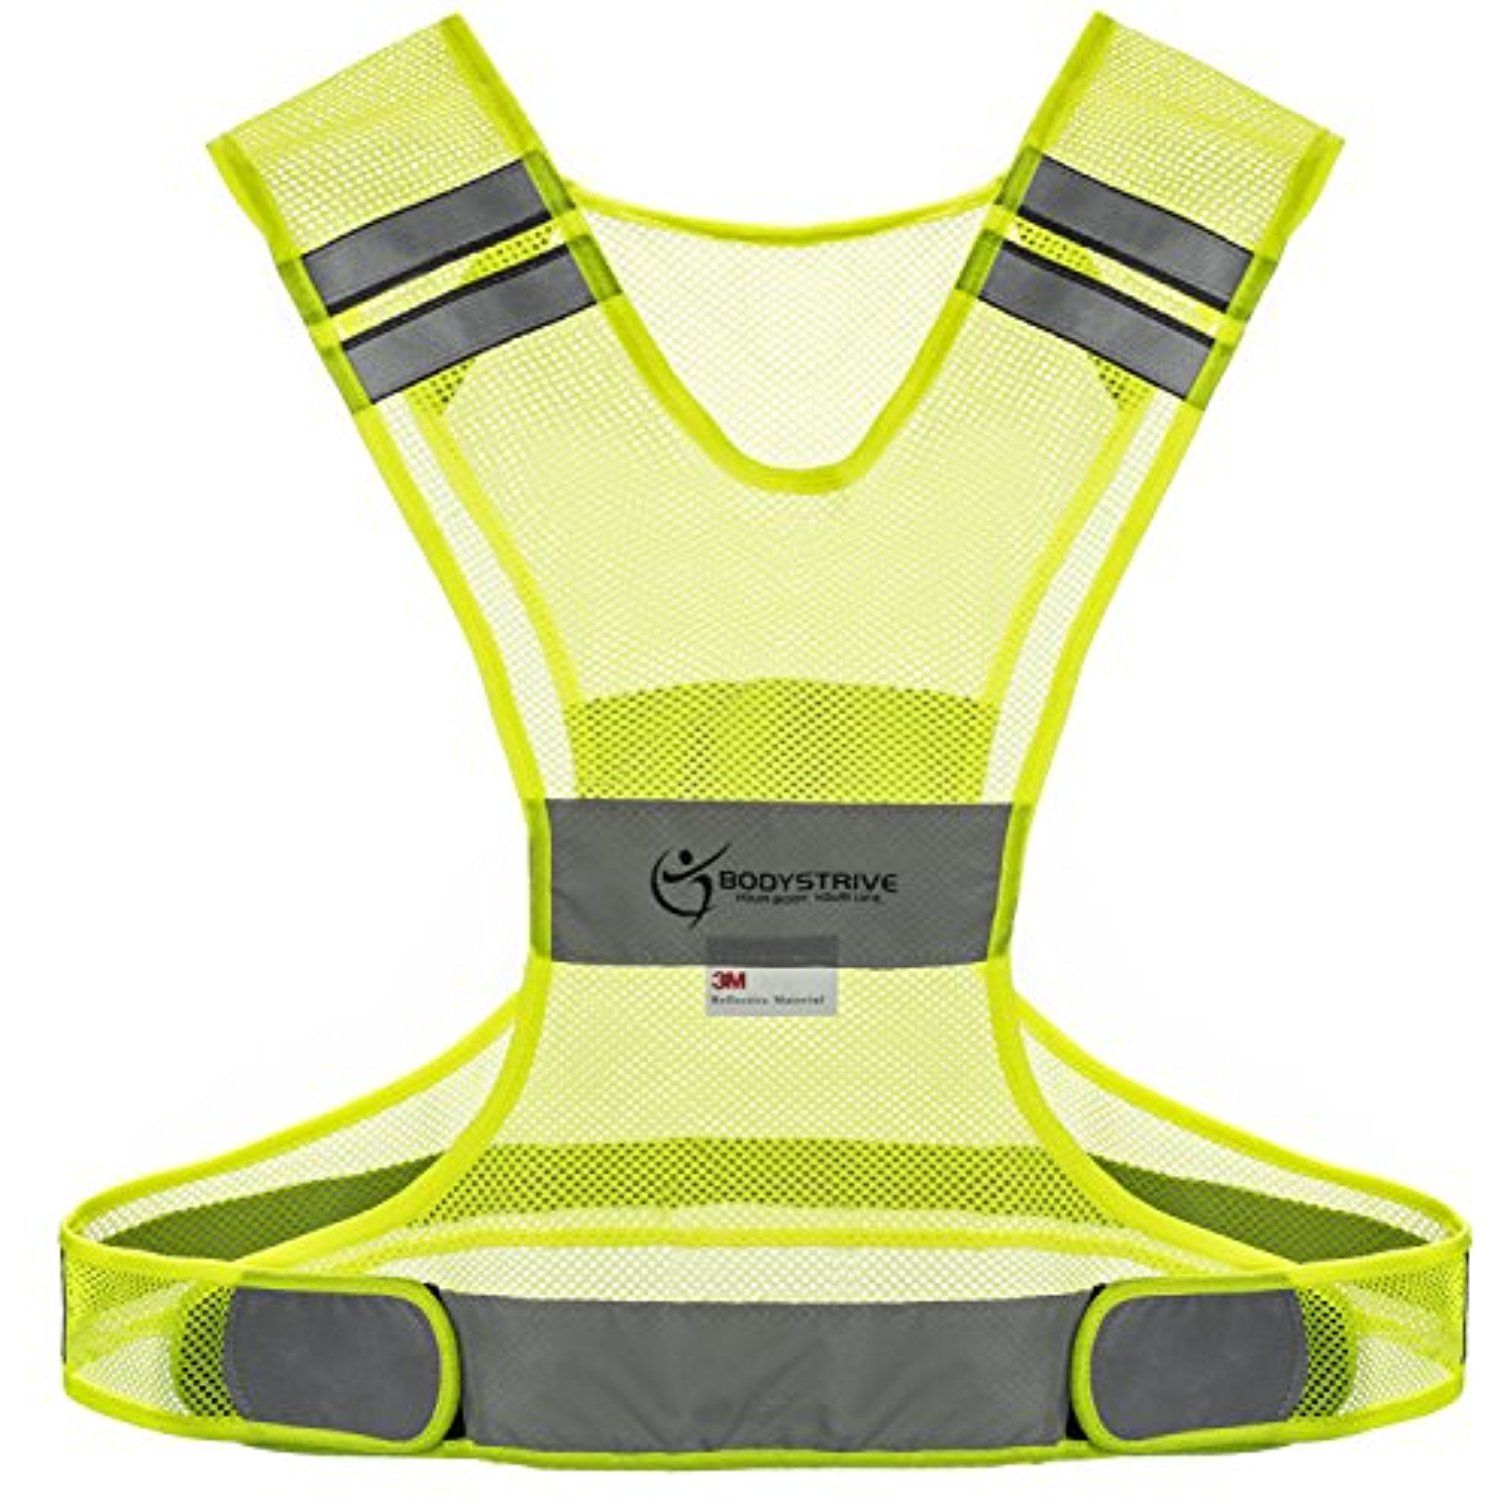 Reflective Vest MADE OF REAL 3M SCOTCHLITE MATERIAL